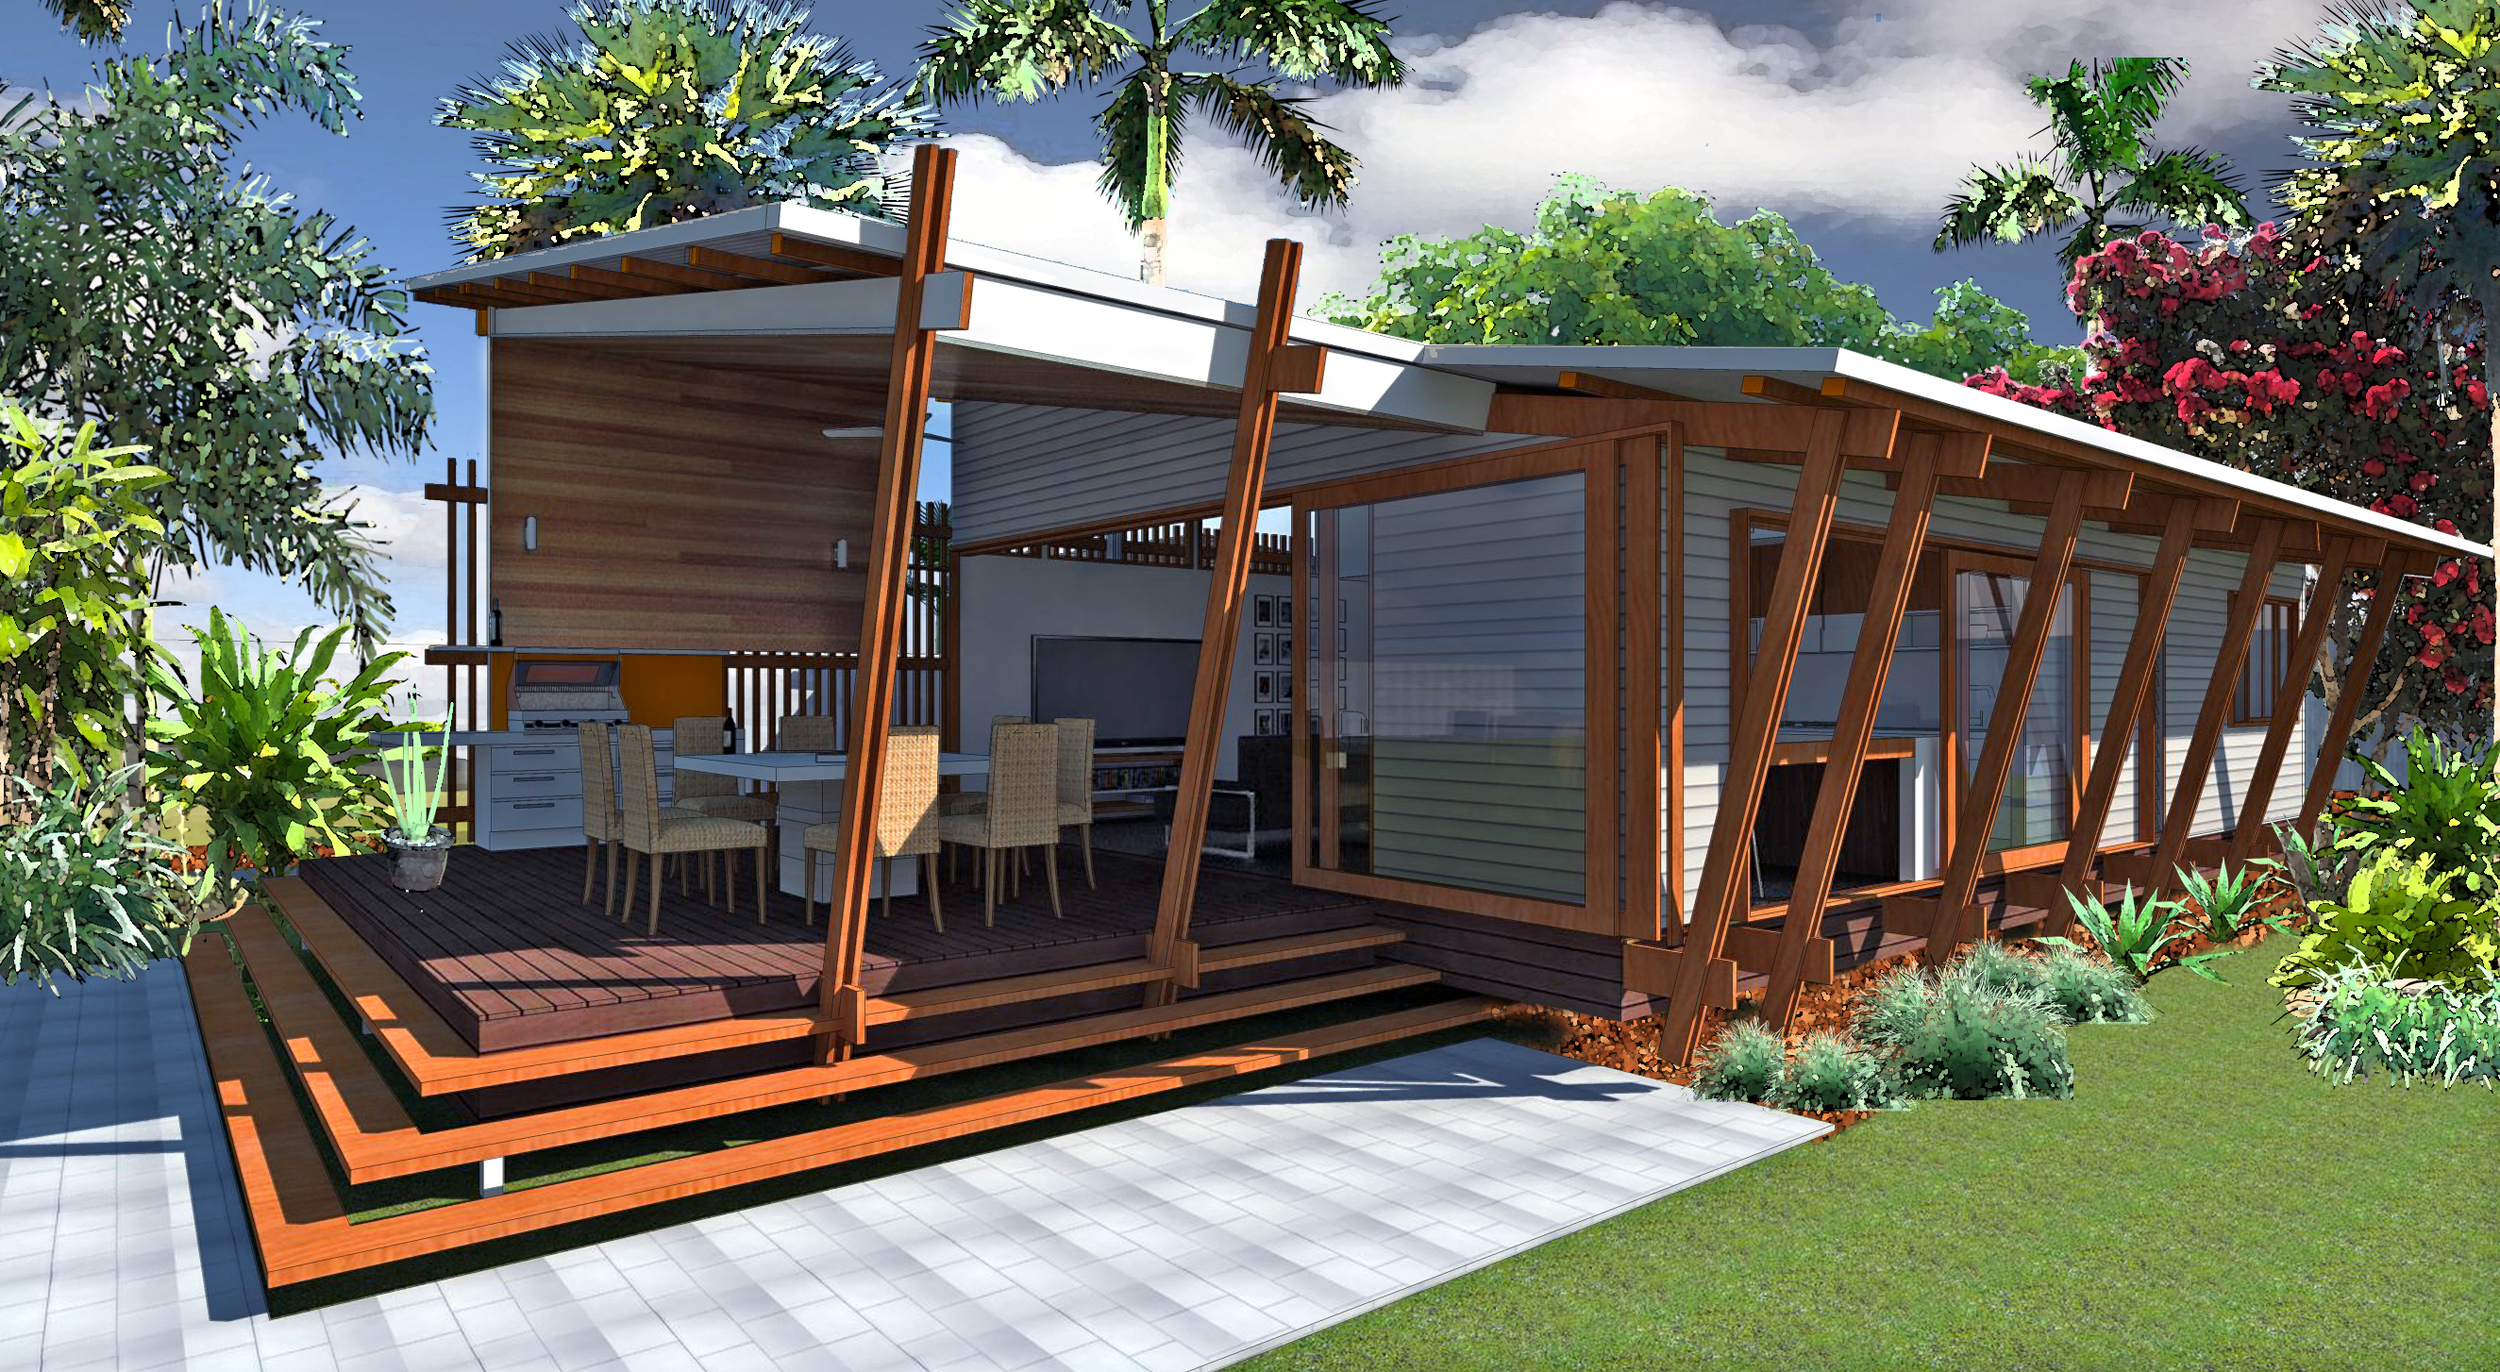 Baahouse 3d Gallery Baahouse Granny Flats Tiny House